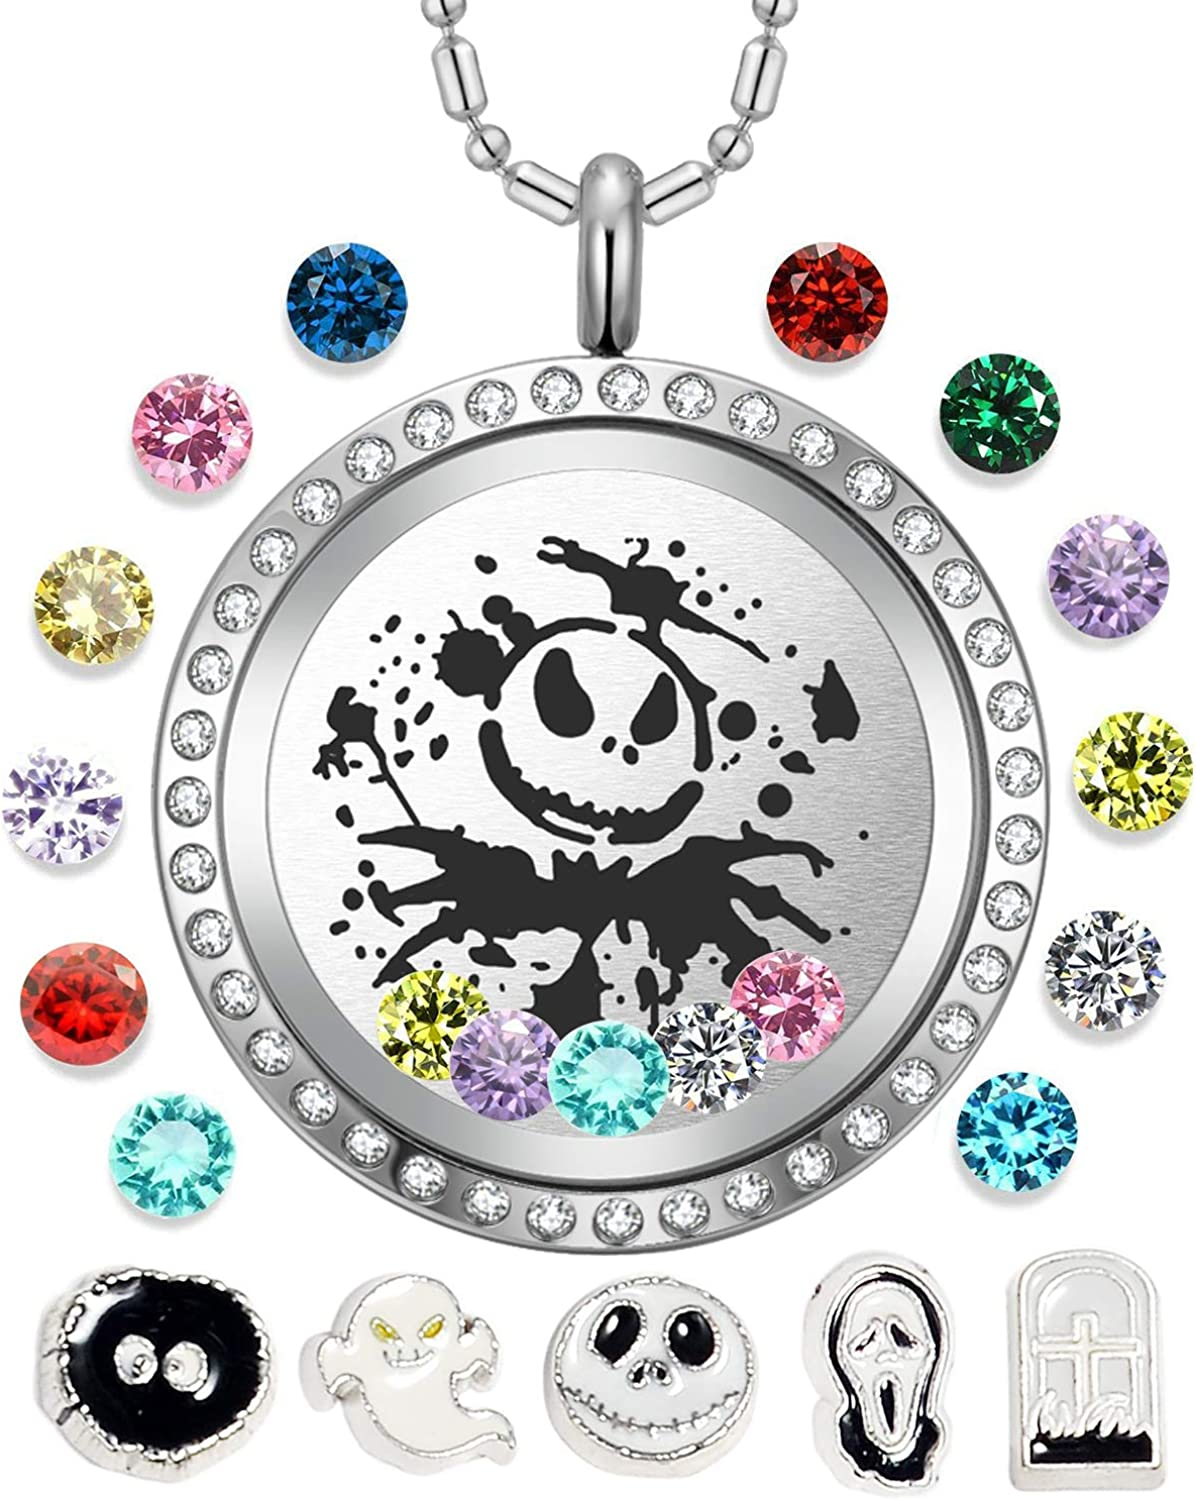 AZNECK 30mm Jack Skull Nightmare Before Christmas Floating Charms Necklaces Living Memory Halloween Locket Pendant Gifts for Women Girls Men Boys Birthstone Jewelry